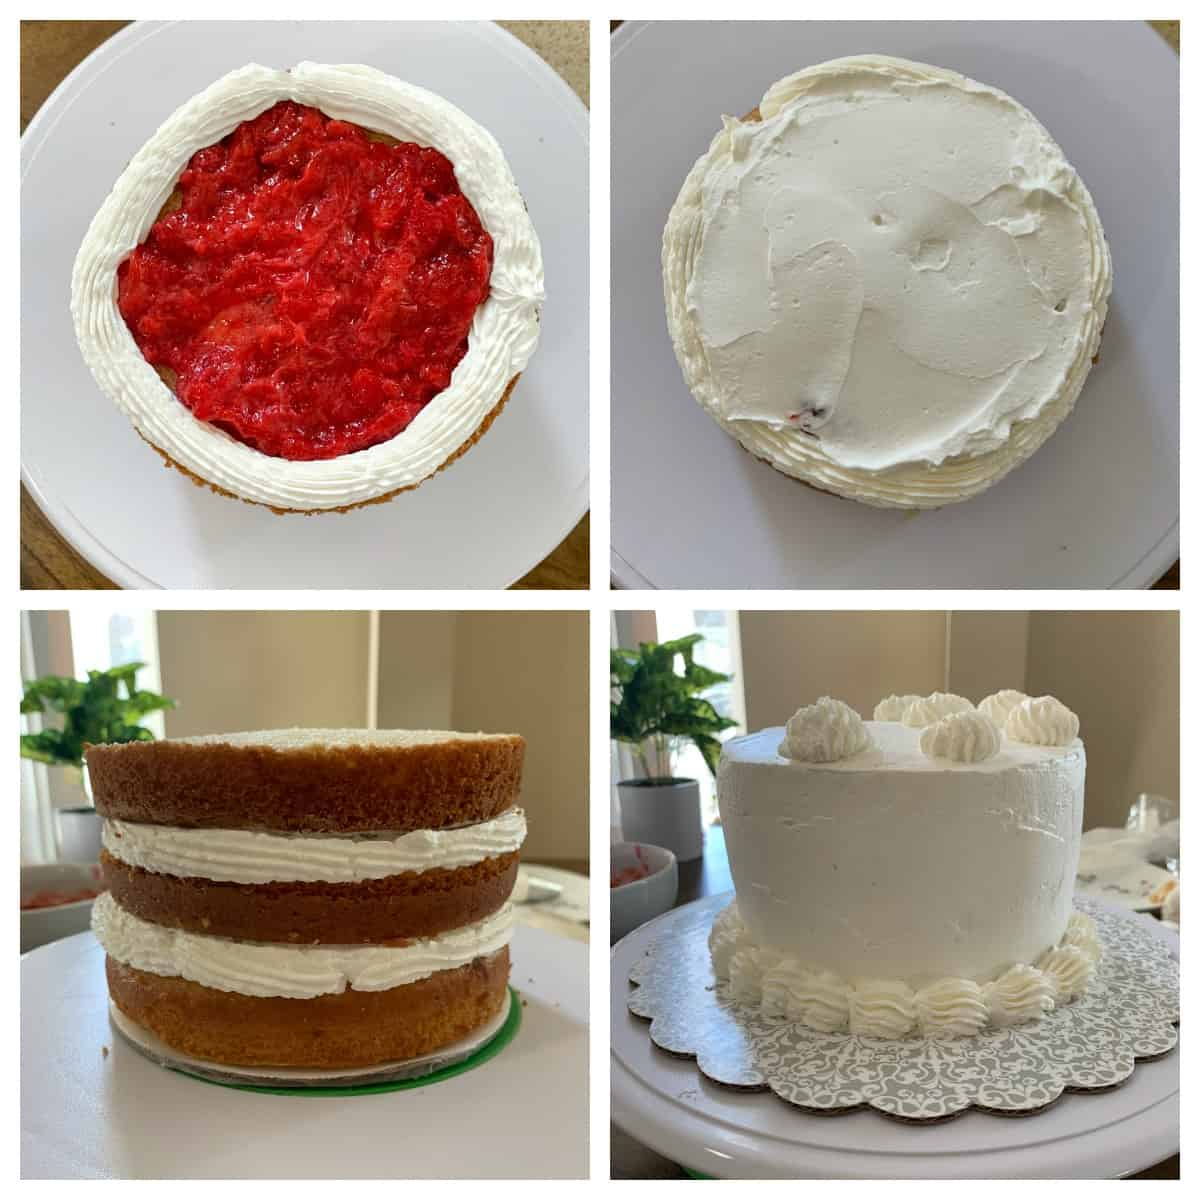 Step by step making of strawberries and cream cake